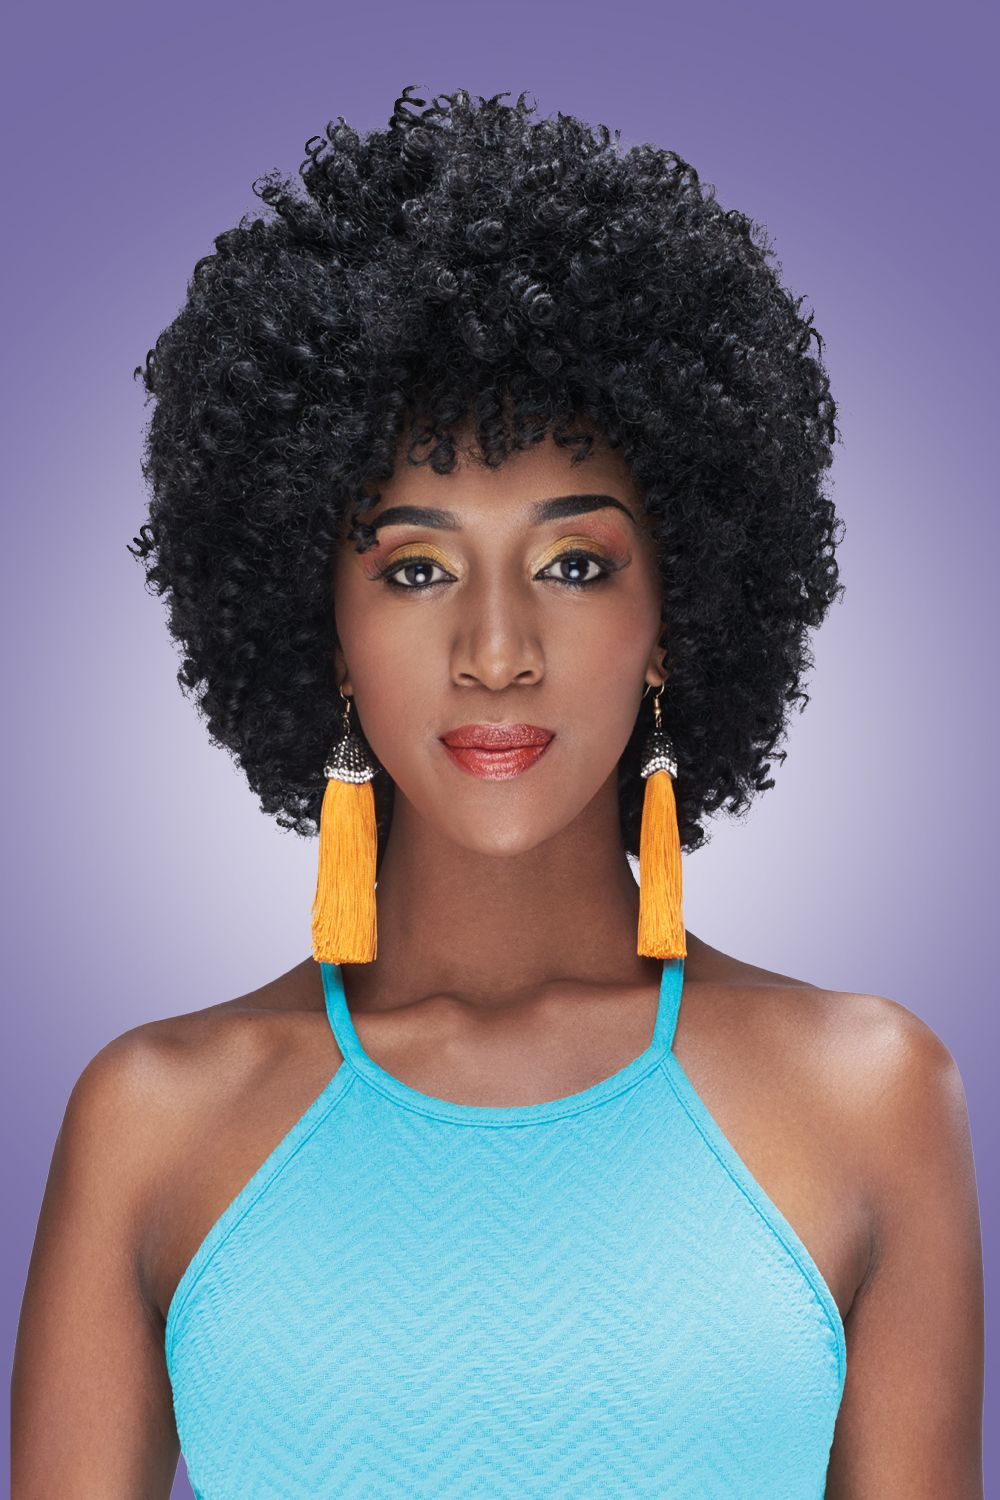 Darling Miss Ross Weave In 2020 Weave Hairstyles Layered Curls Hair Styles